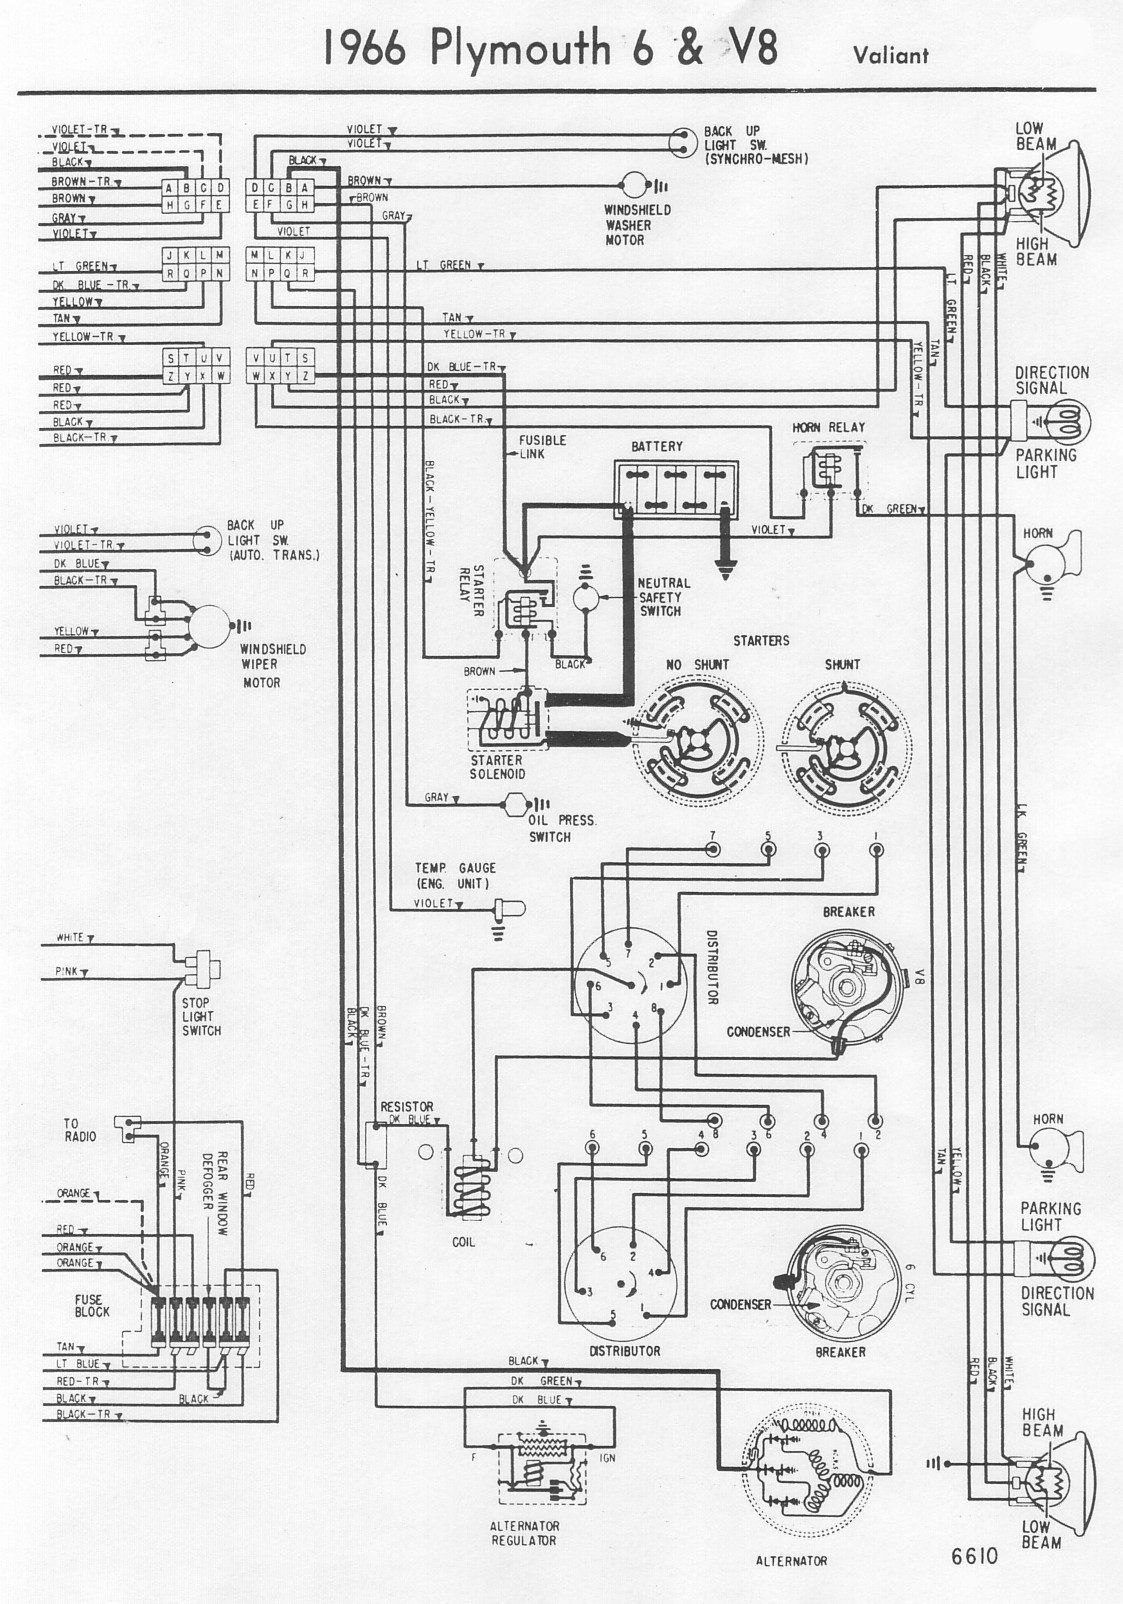 1966 plymouth satellite wiring diagram wiring diagram 1968 plymouth belvedere satellite road